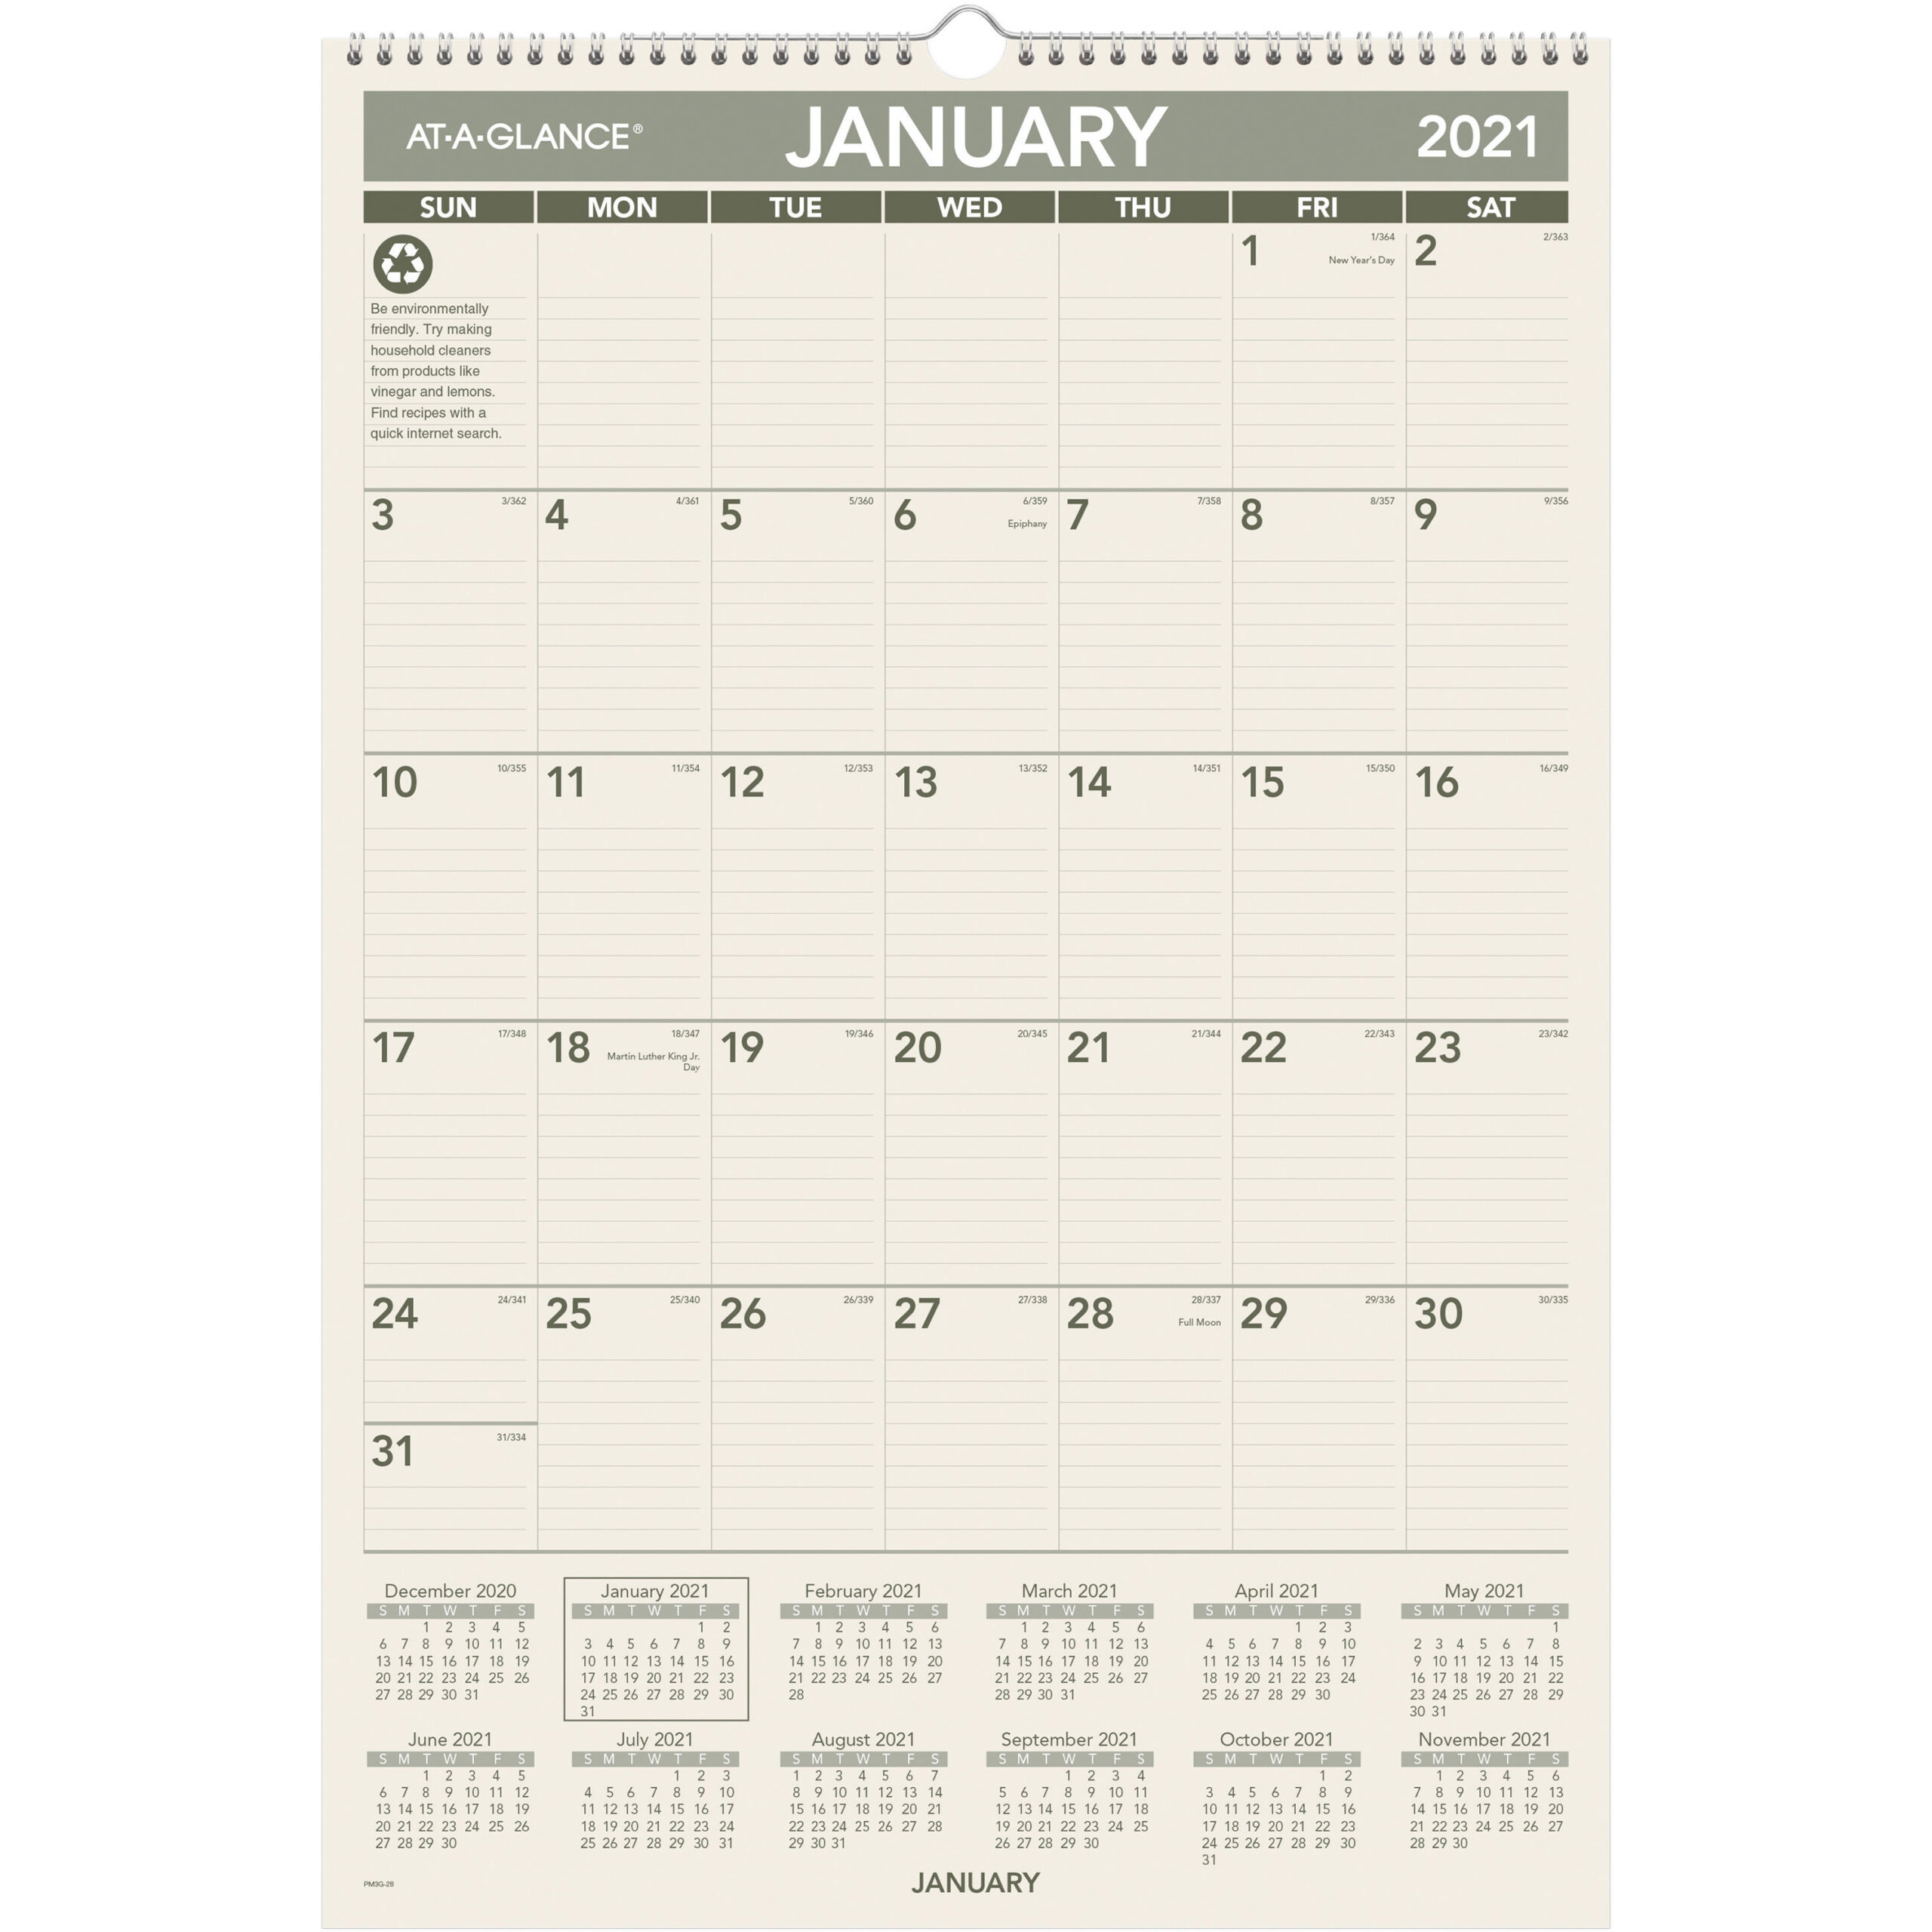 "At-A-Glance 100% Pcw Monthly Wall Calendar - Julian Dates - Monthly - 1  Year - January 2021 Till December 2021 - 1 Month Single Page Layout - 15  1/2"" for 2021 2021 2 Year Monthly Planner Live"